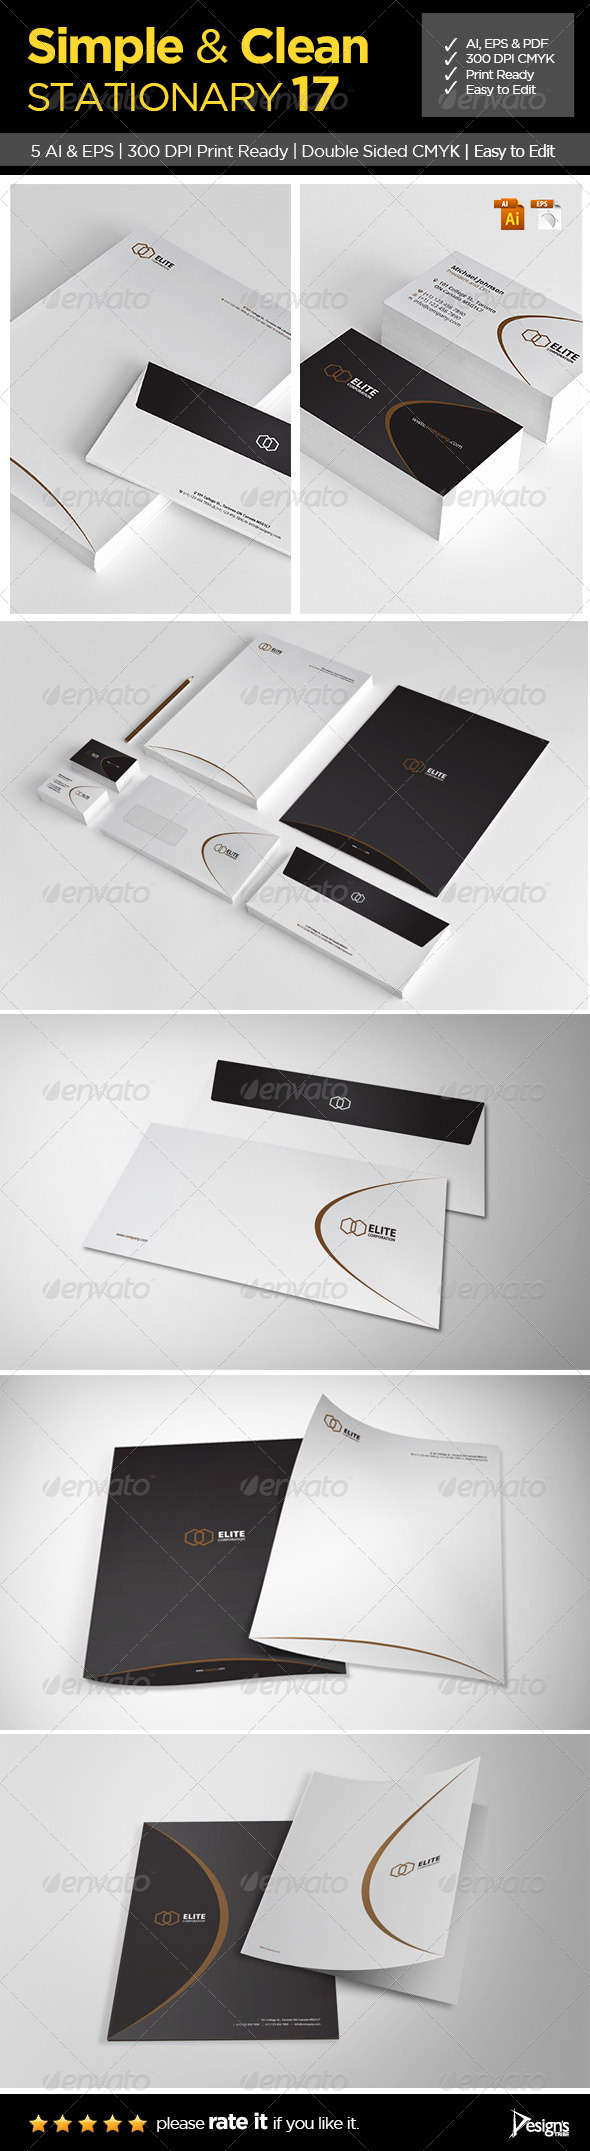 GraphicRiver Simple and Clean Stationary 17 6499571